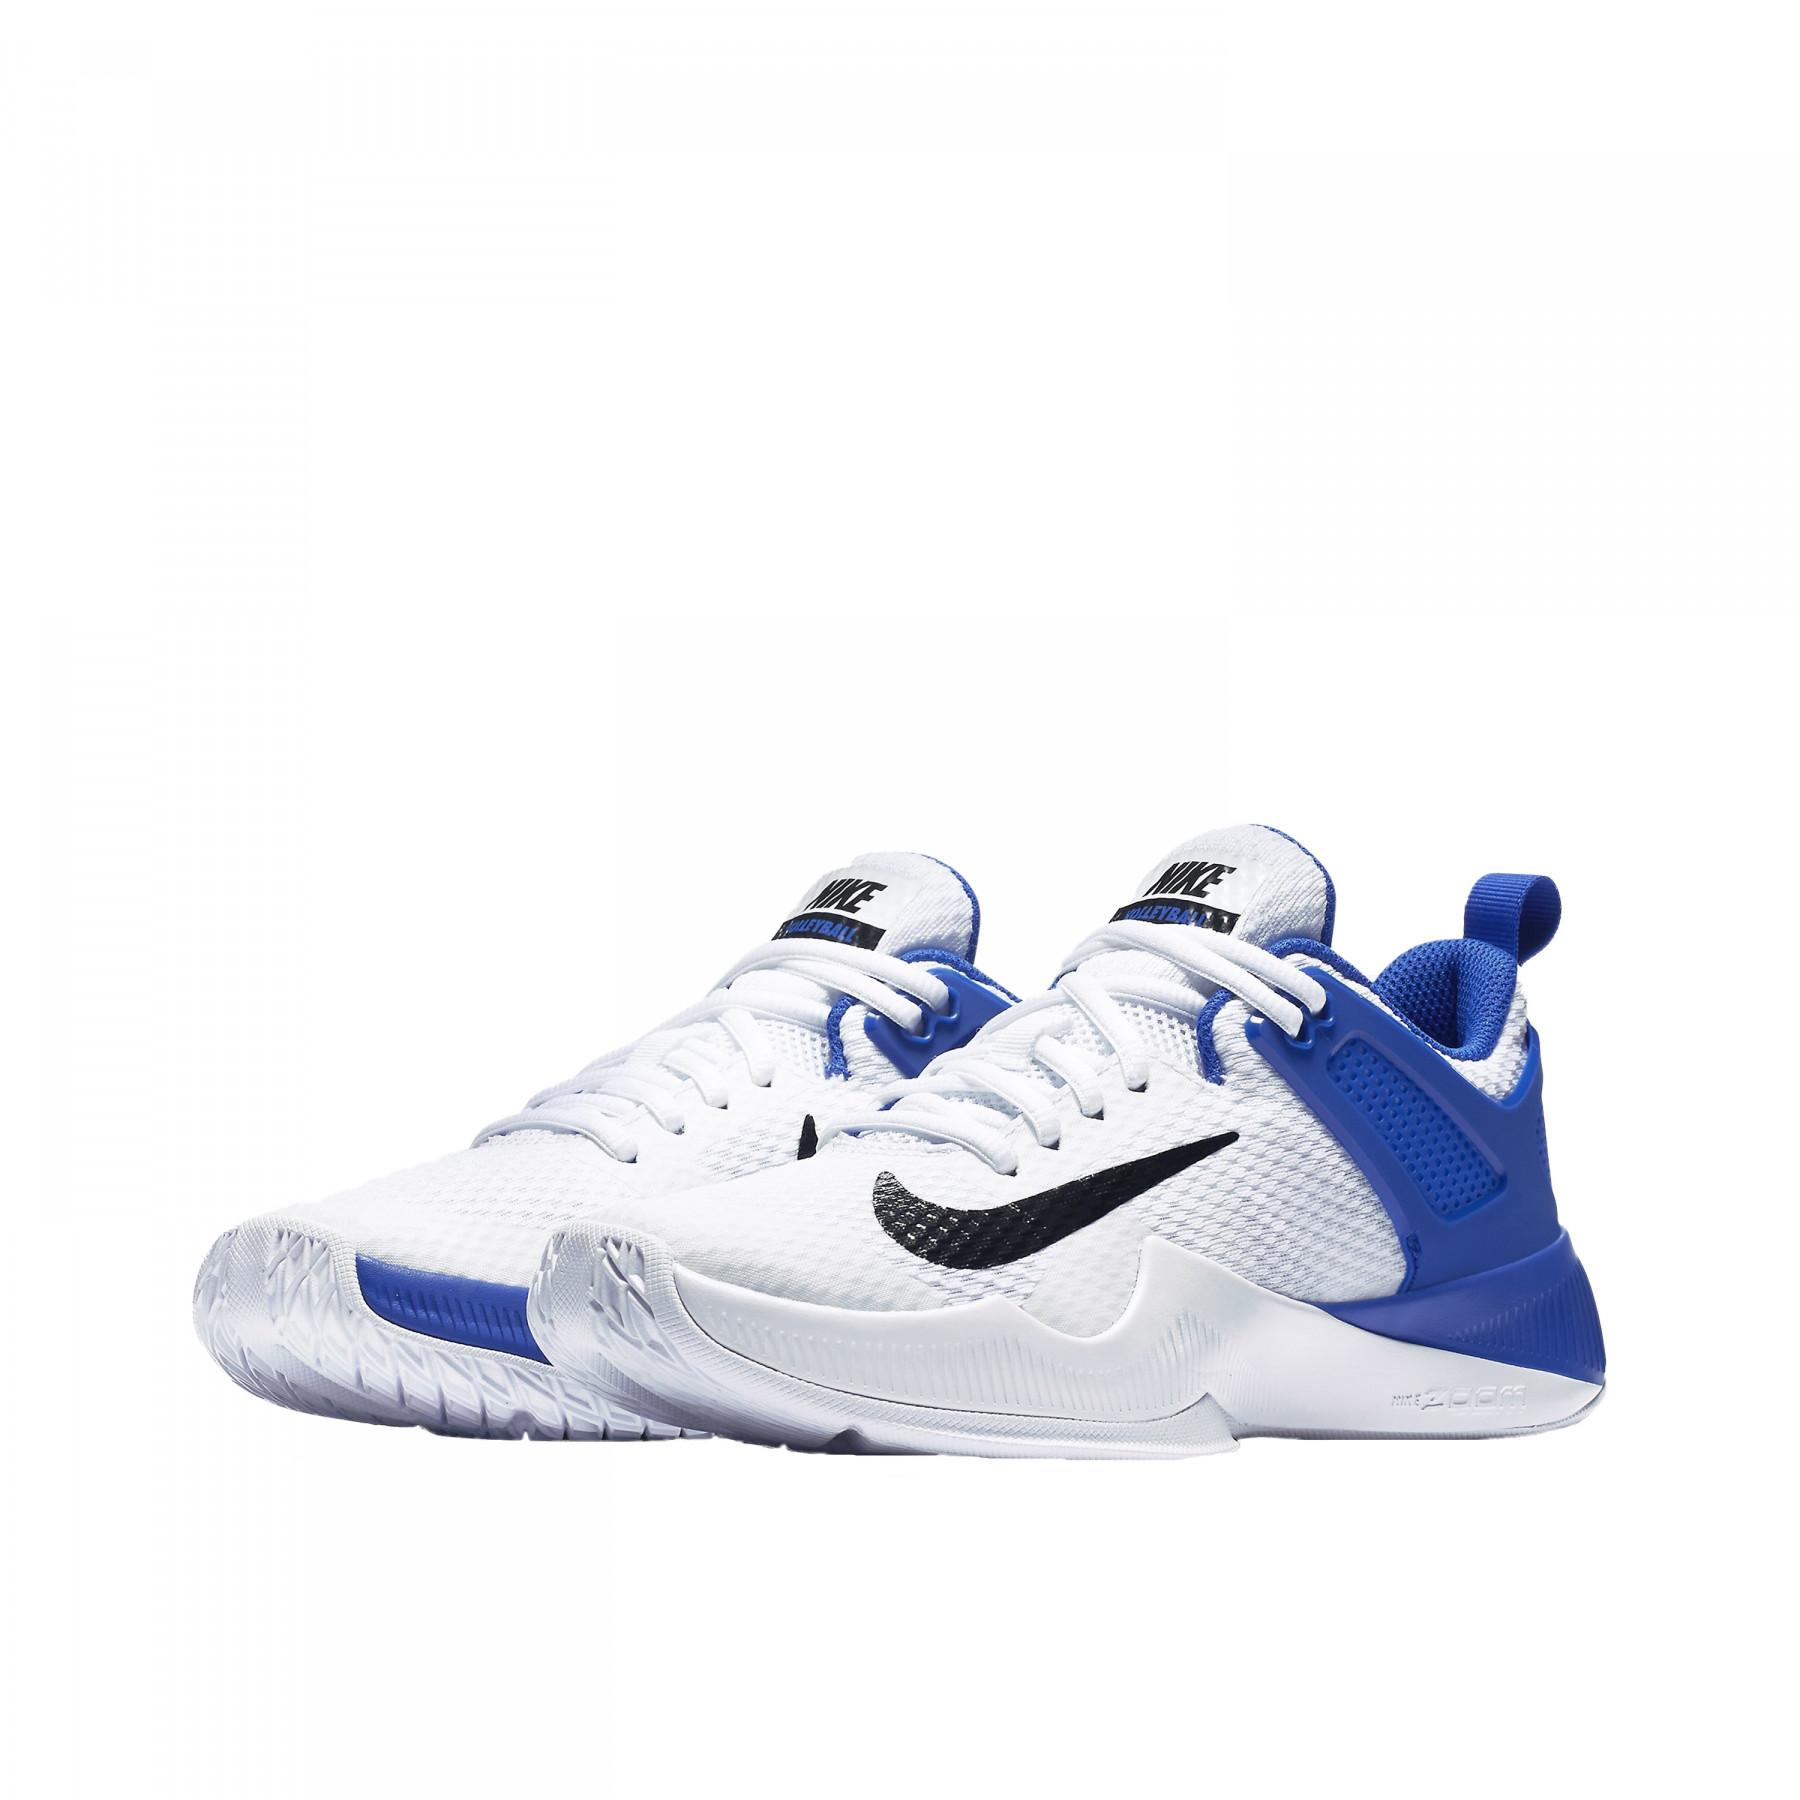 Women's shoes Nike Air Zoom Hyperace